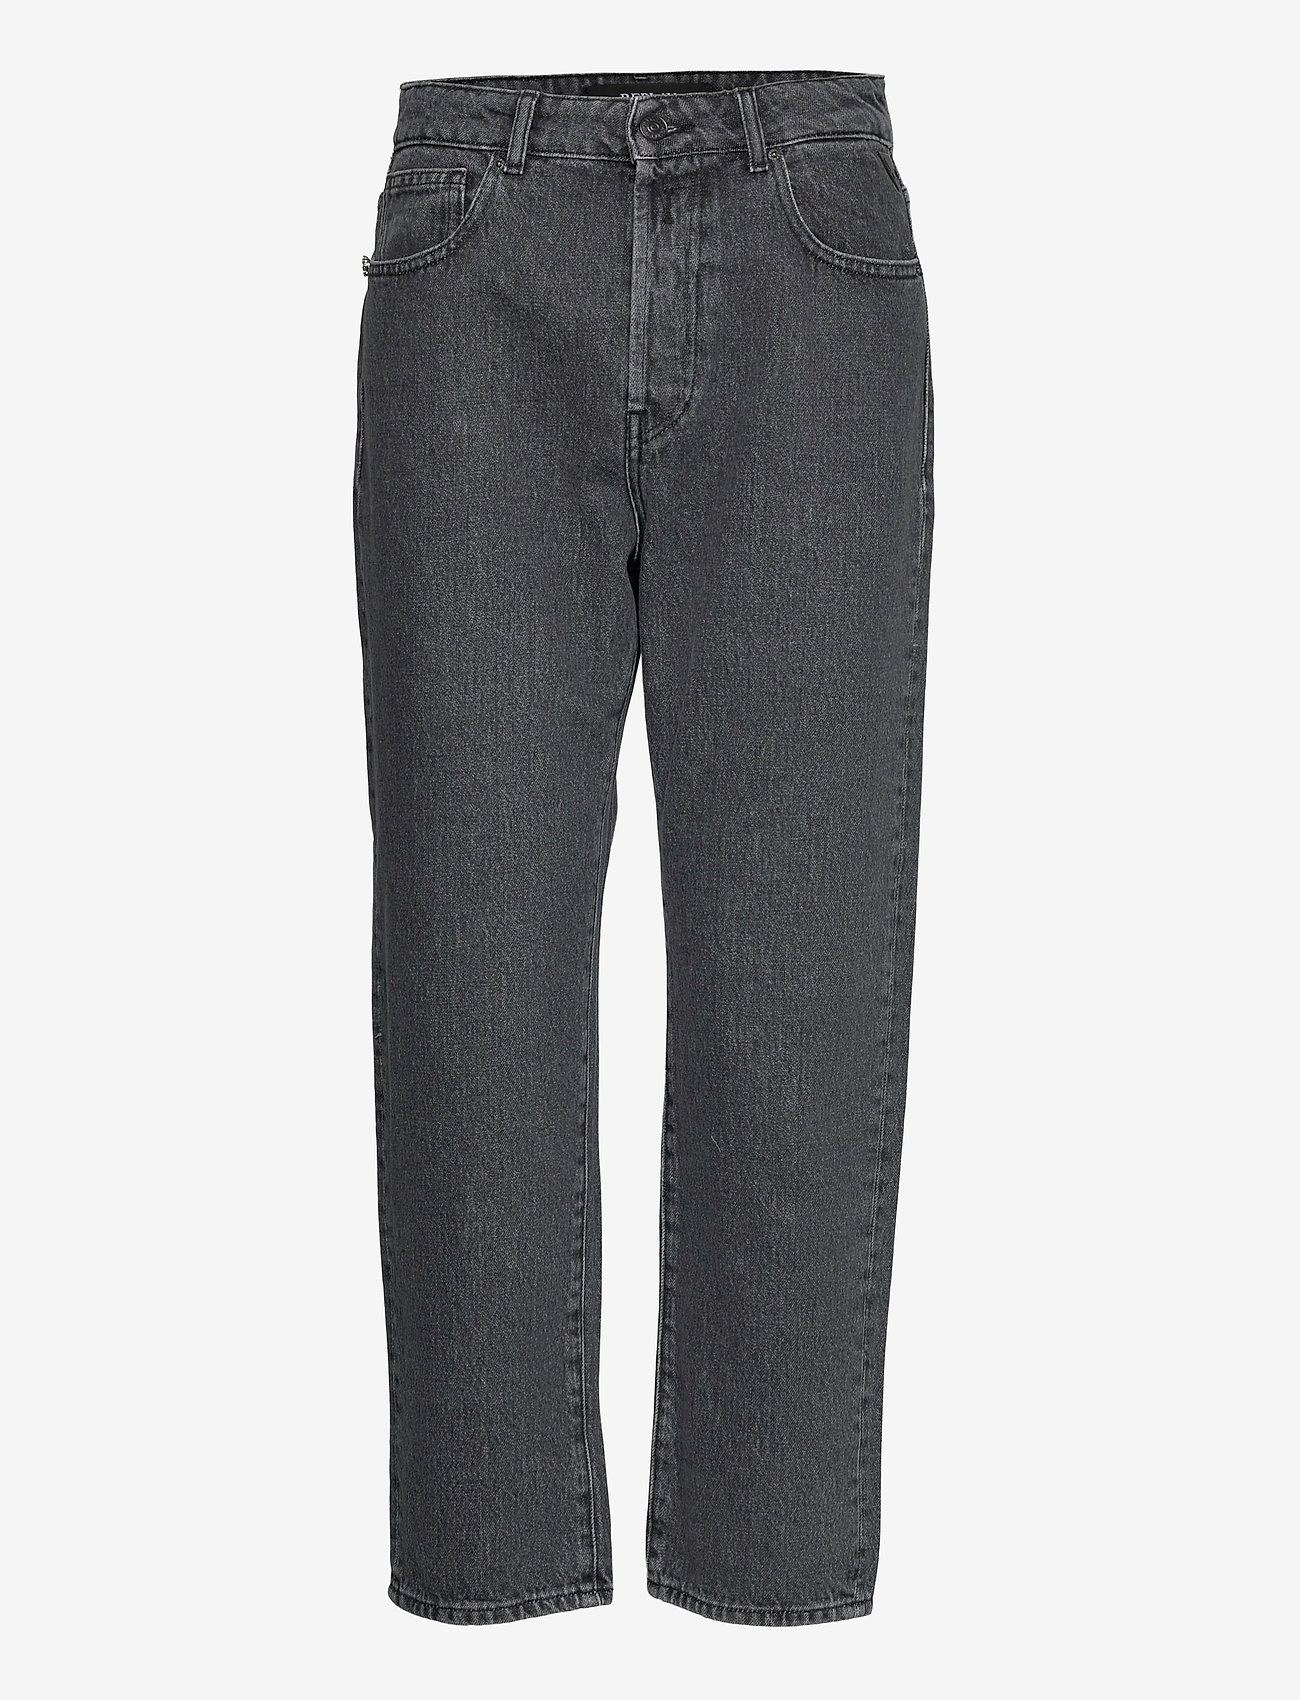 Replay - TYNA - mom jeans - dark grey - 0